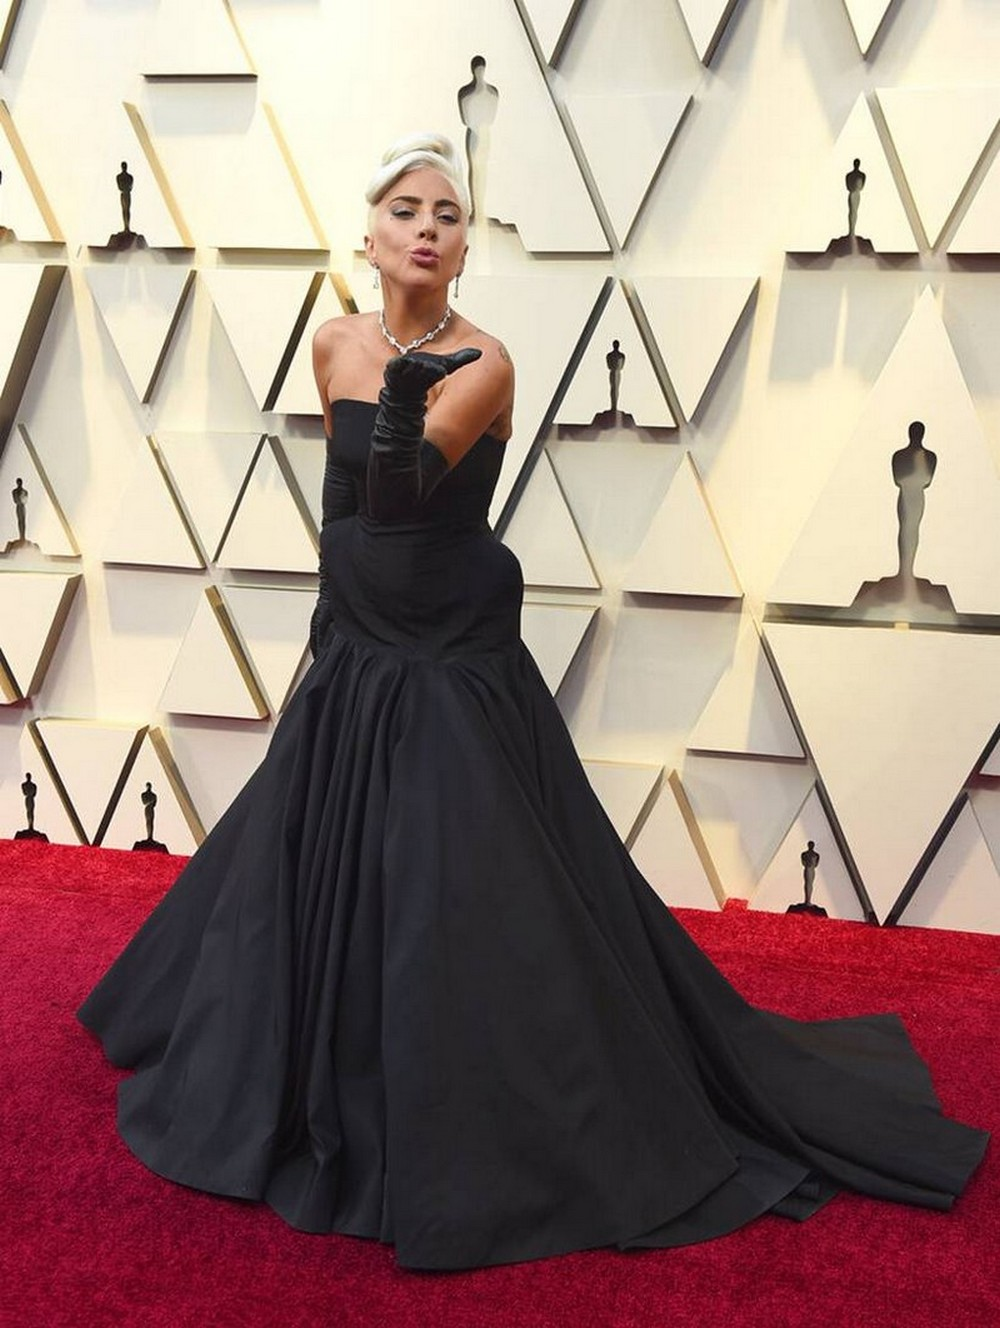 Oscars 2019: Top Interior Design Trends From The Famous Red Carpet oscars 2019 Oscars 2019: Top Interior Design Trends From The Famous Red Carpet Oscars 2019 Top Interior Design Trends From The Famous Red Carpet 7